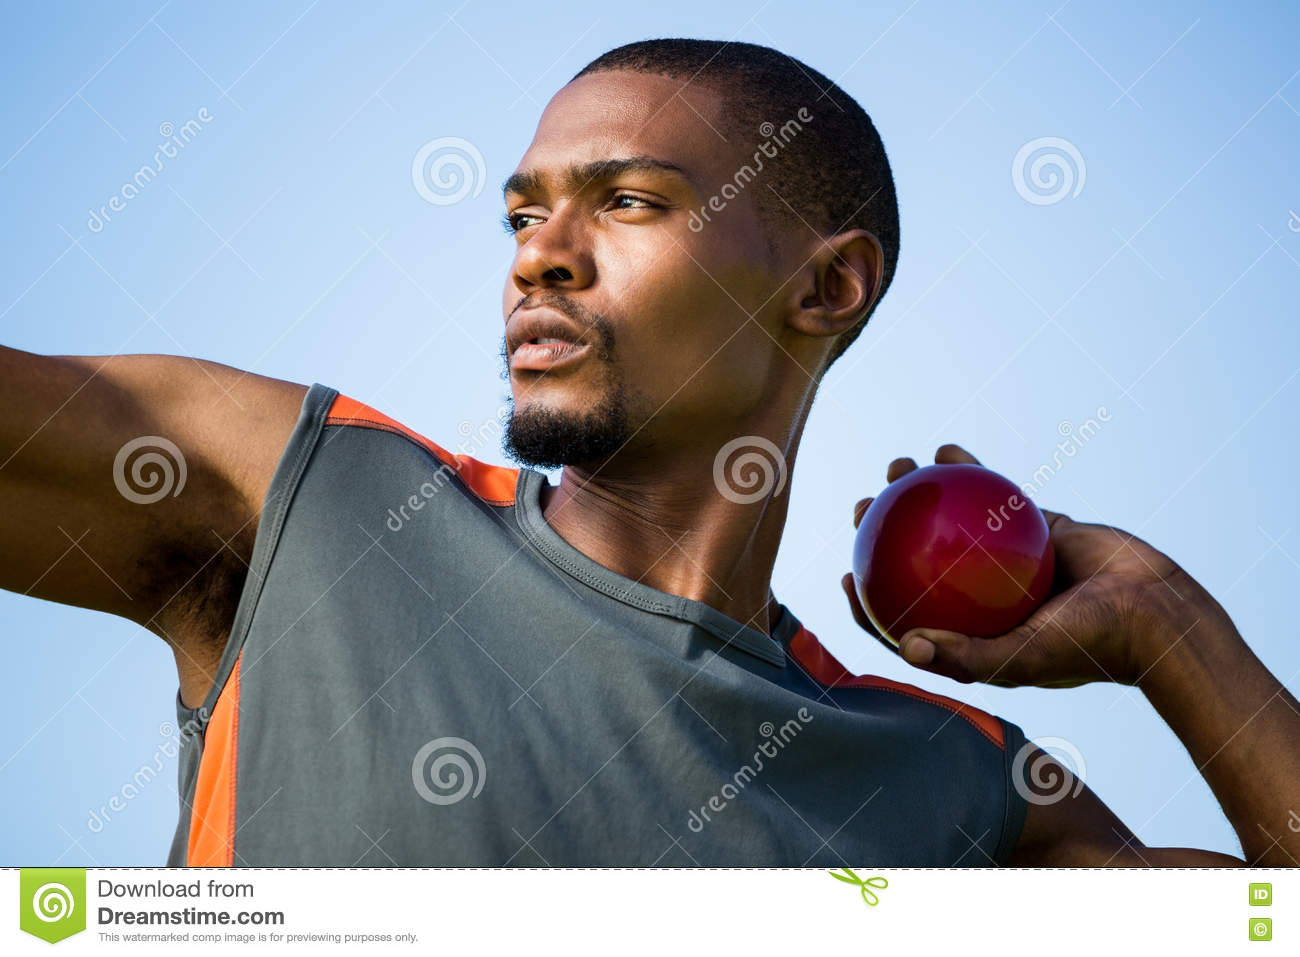 Athlete about to throw shot put ball